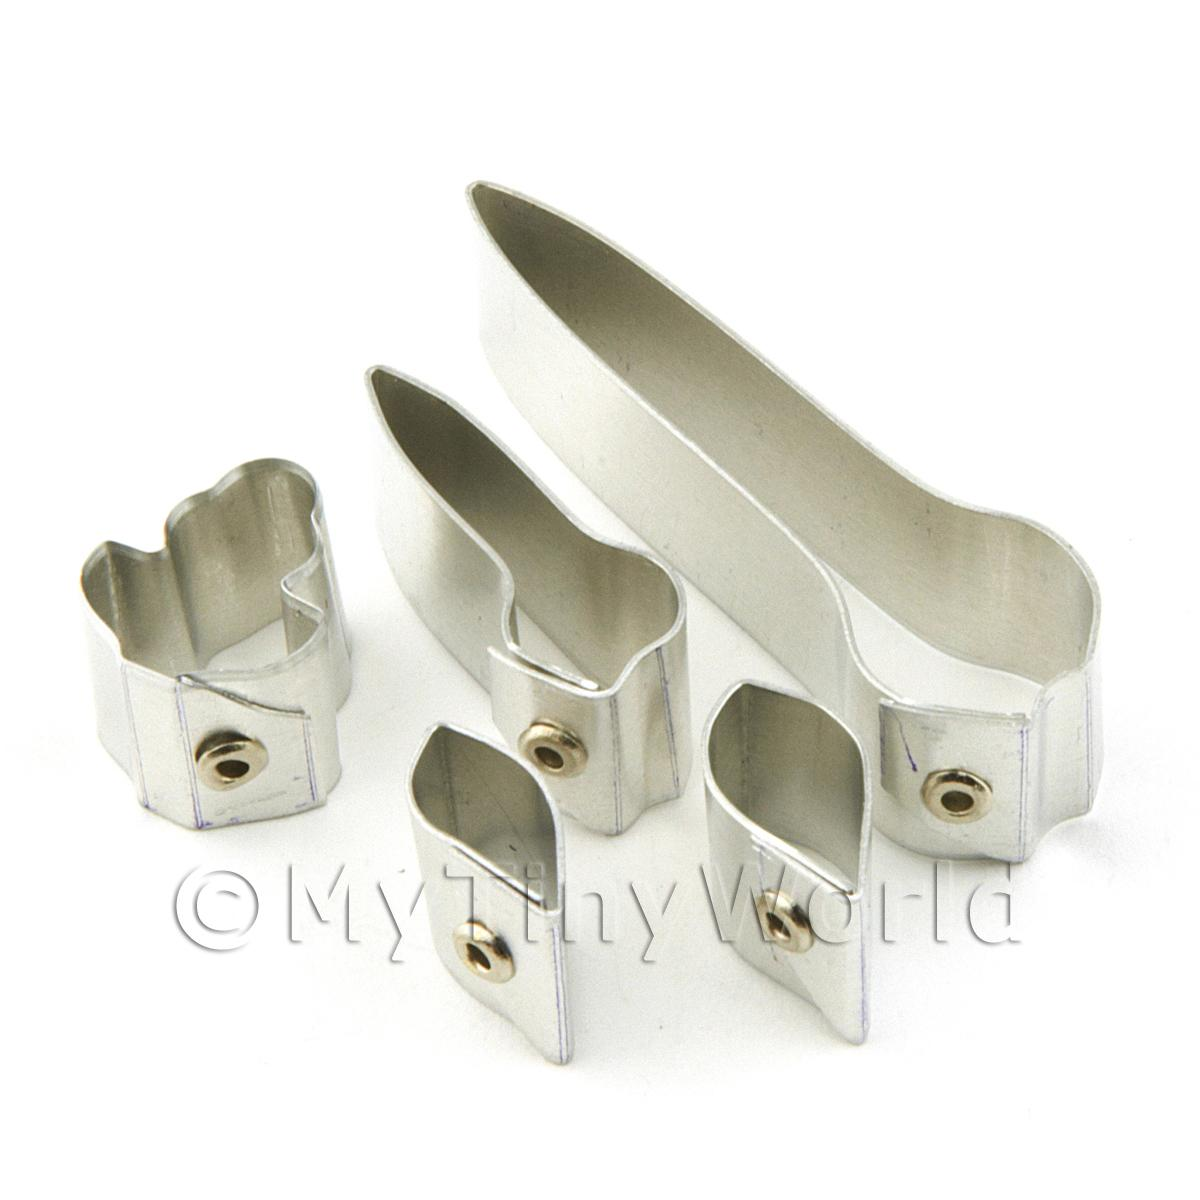 Set of 5 Metal Cymbidium Orchid Sugar Craft Cutters